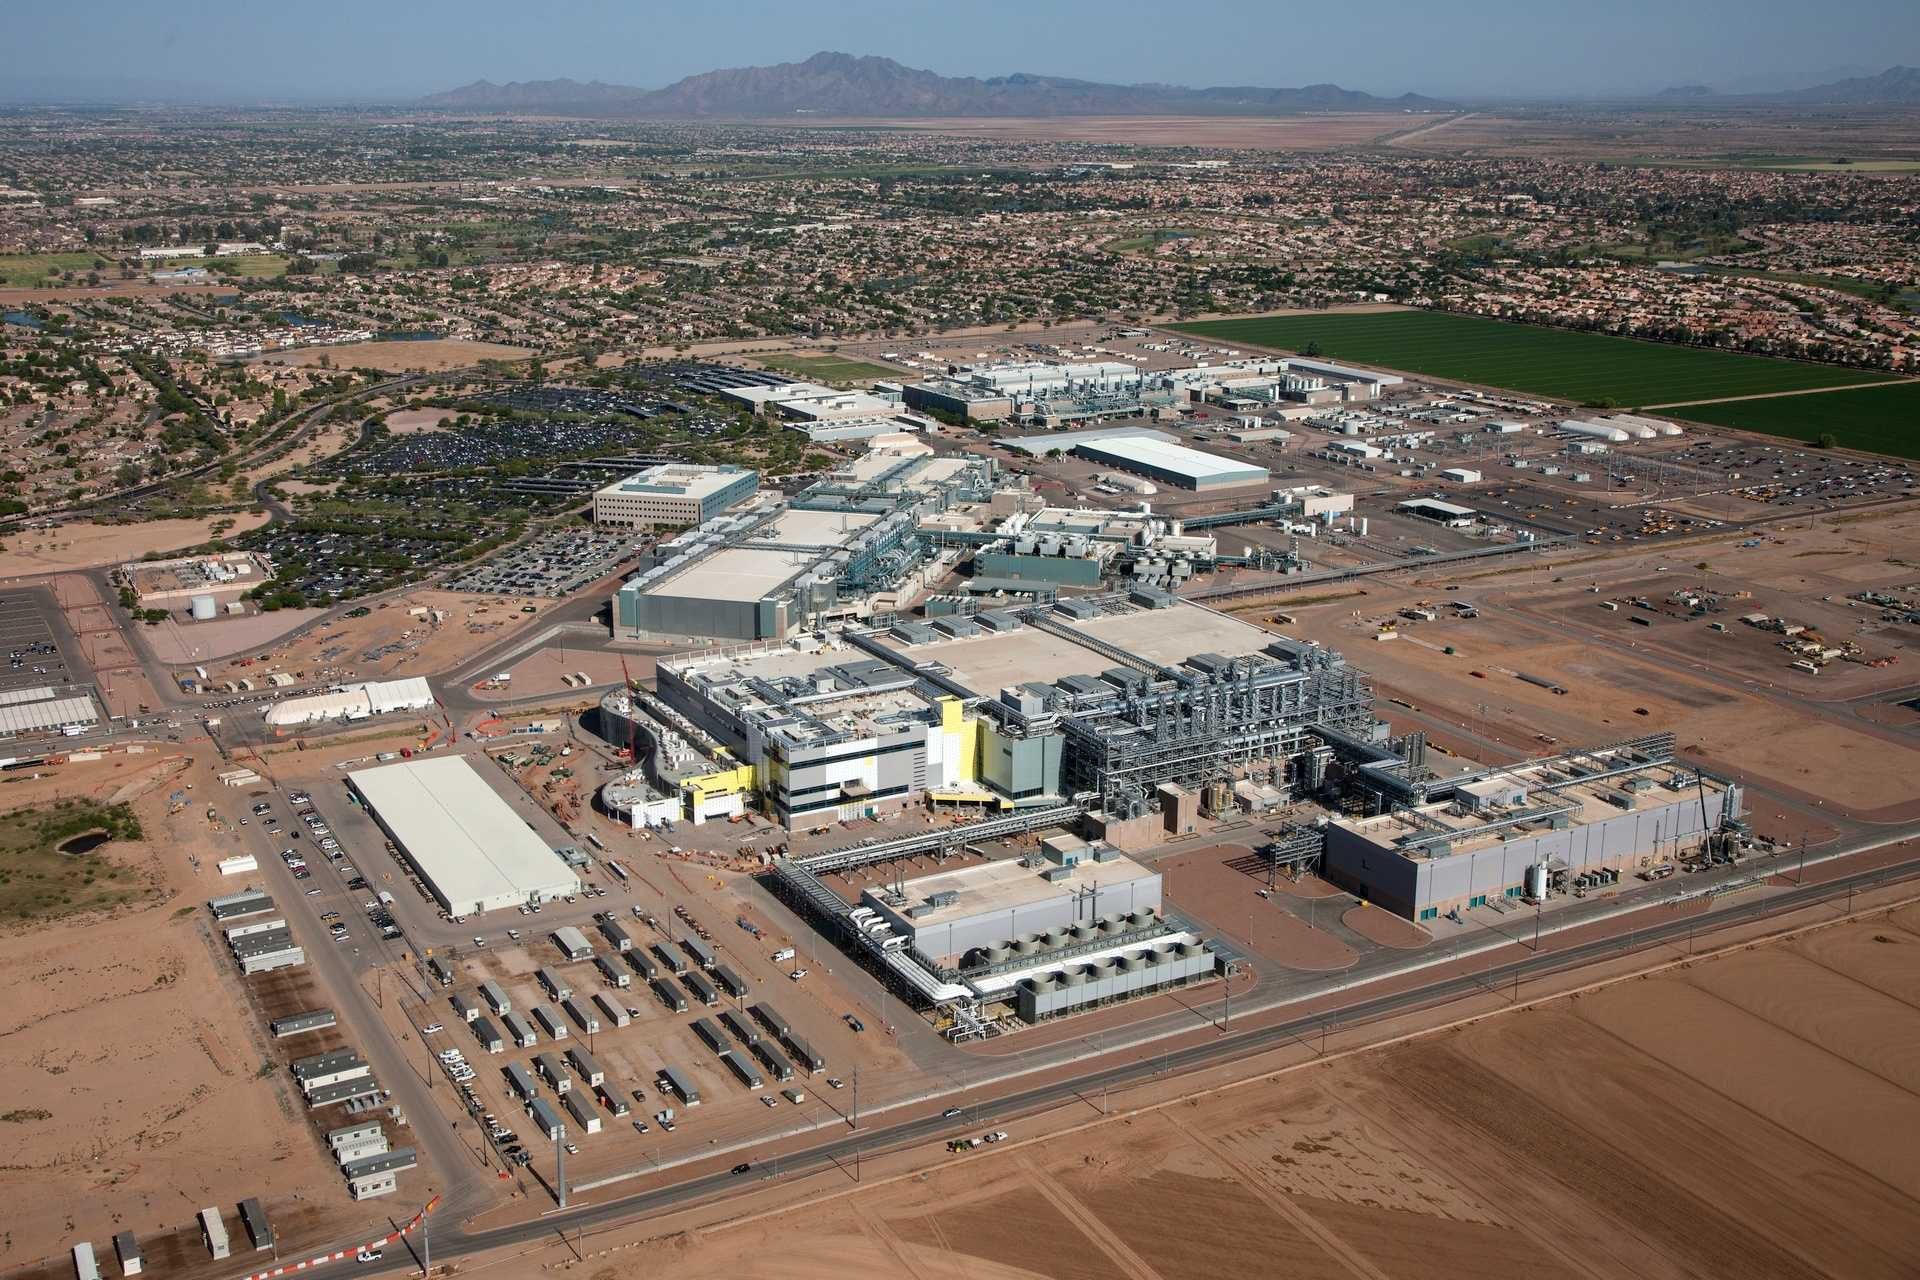 Intel-Fab 42 in Chandler, Arizona